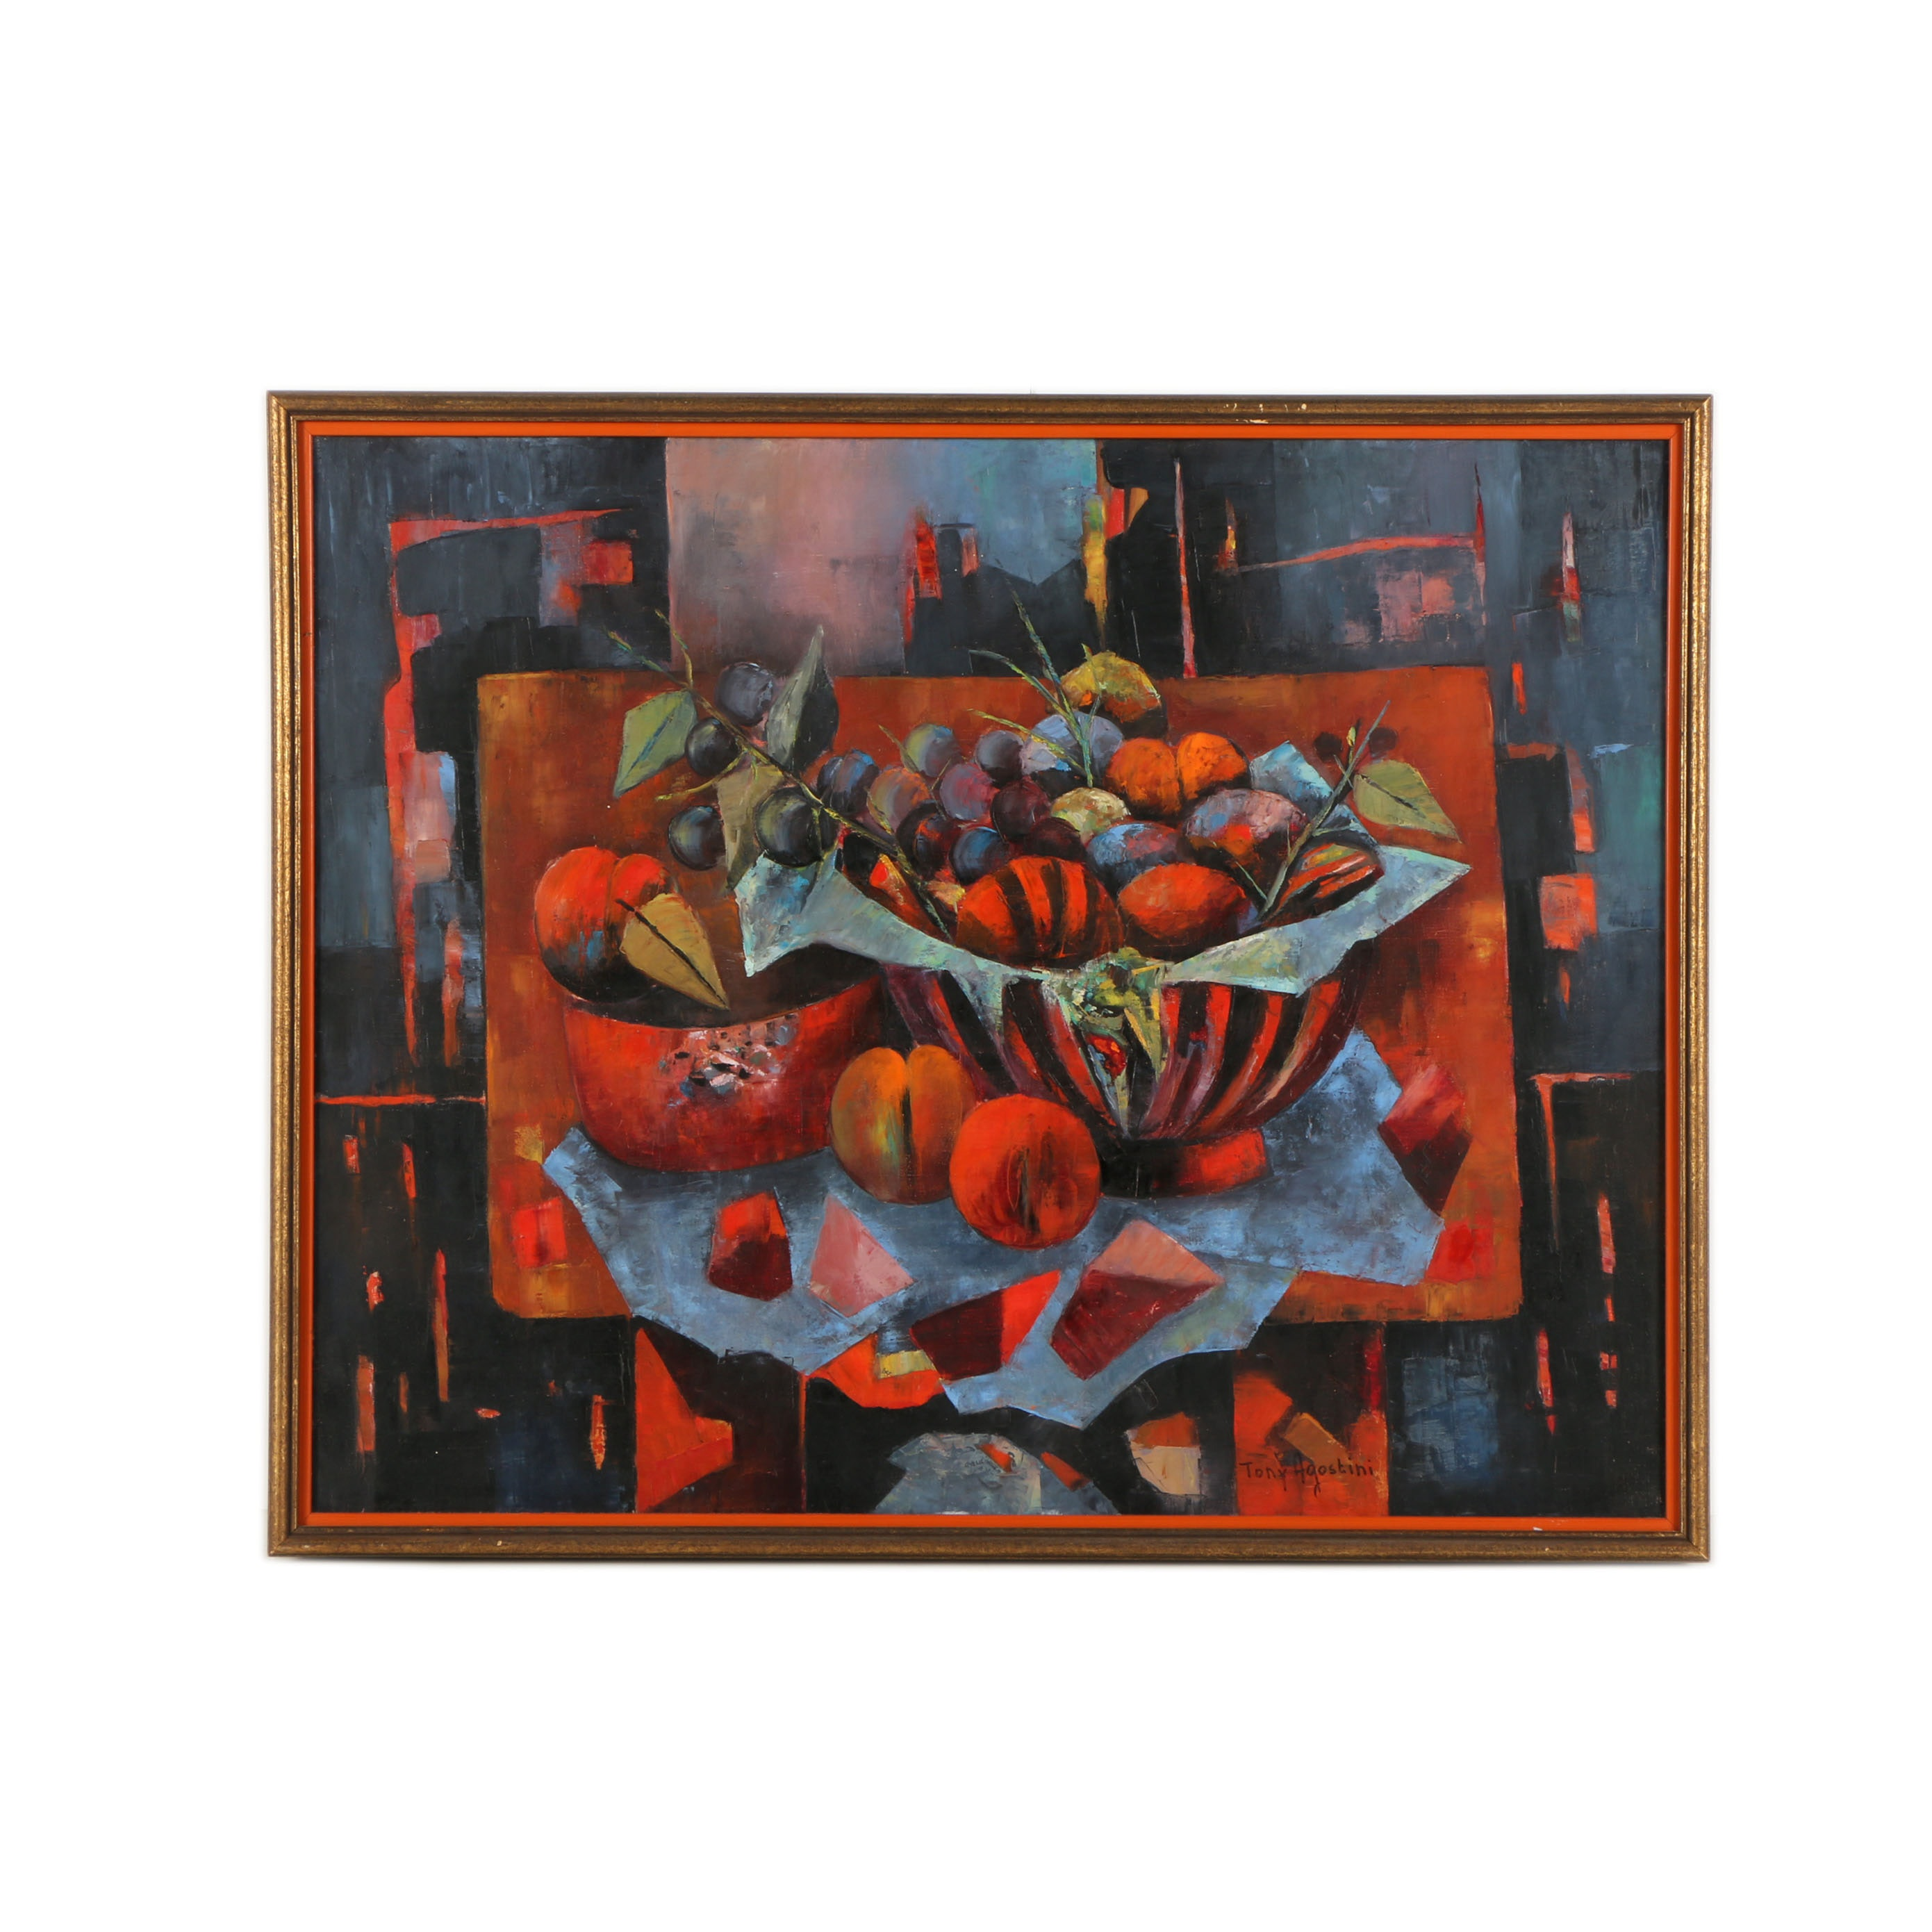 Tony Agostini Oil on Canvas Painting of an Abstract Still Life